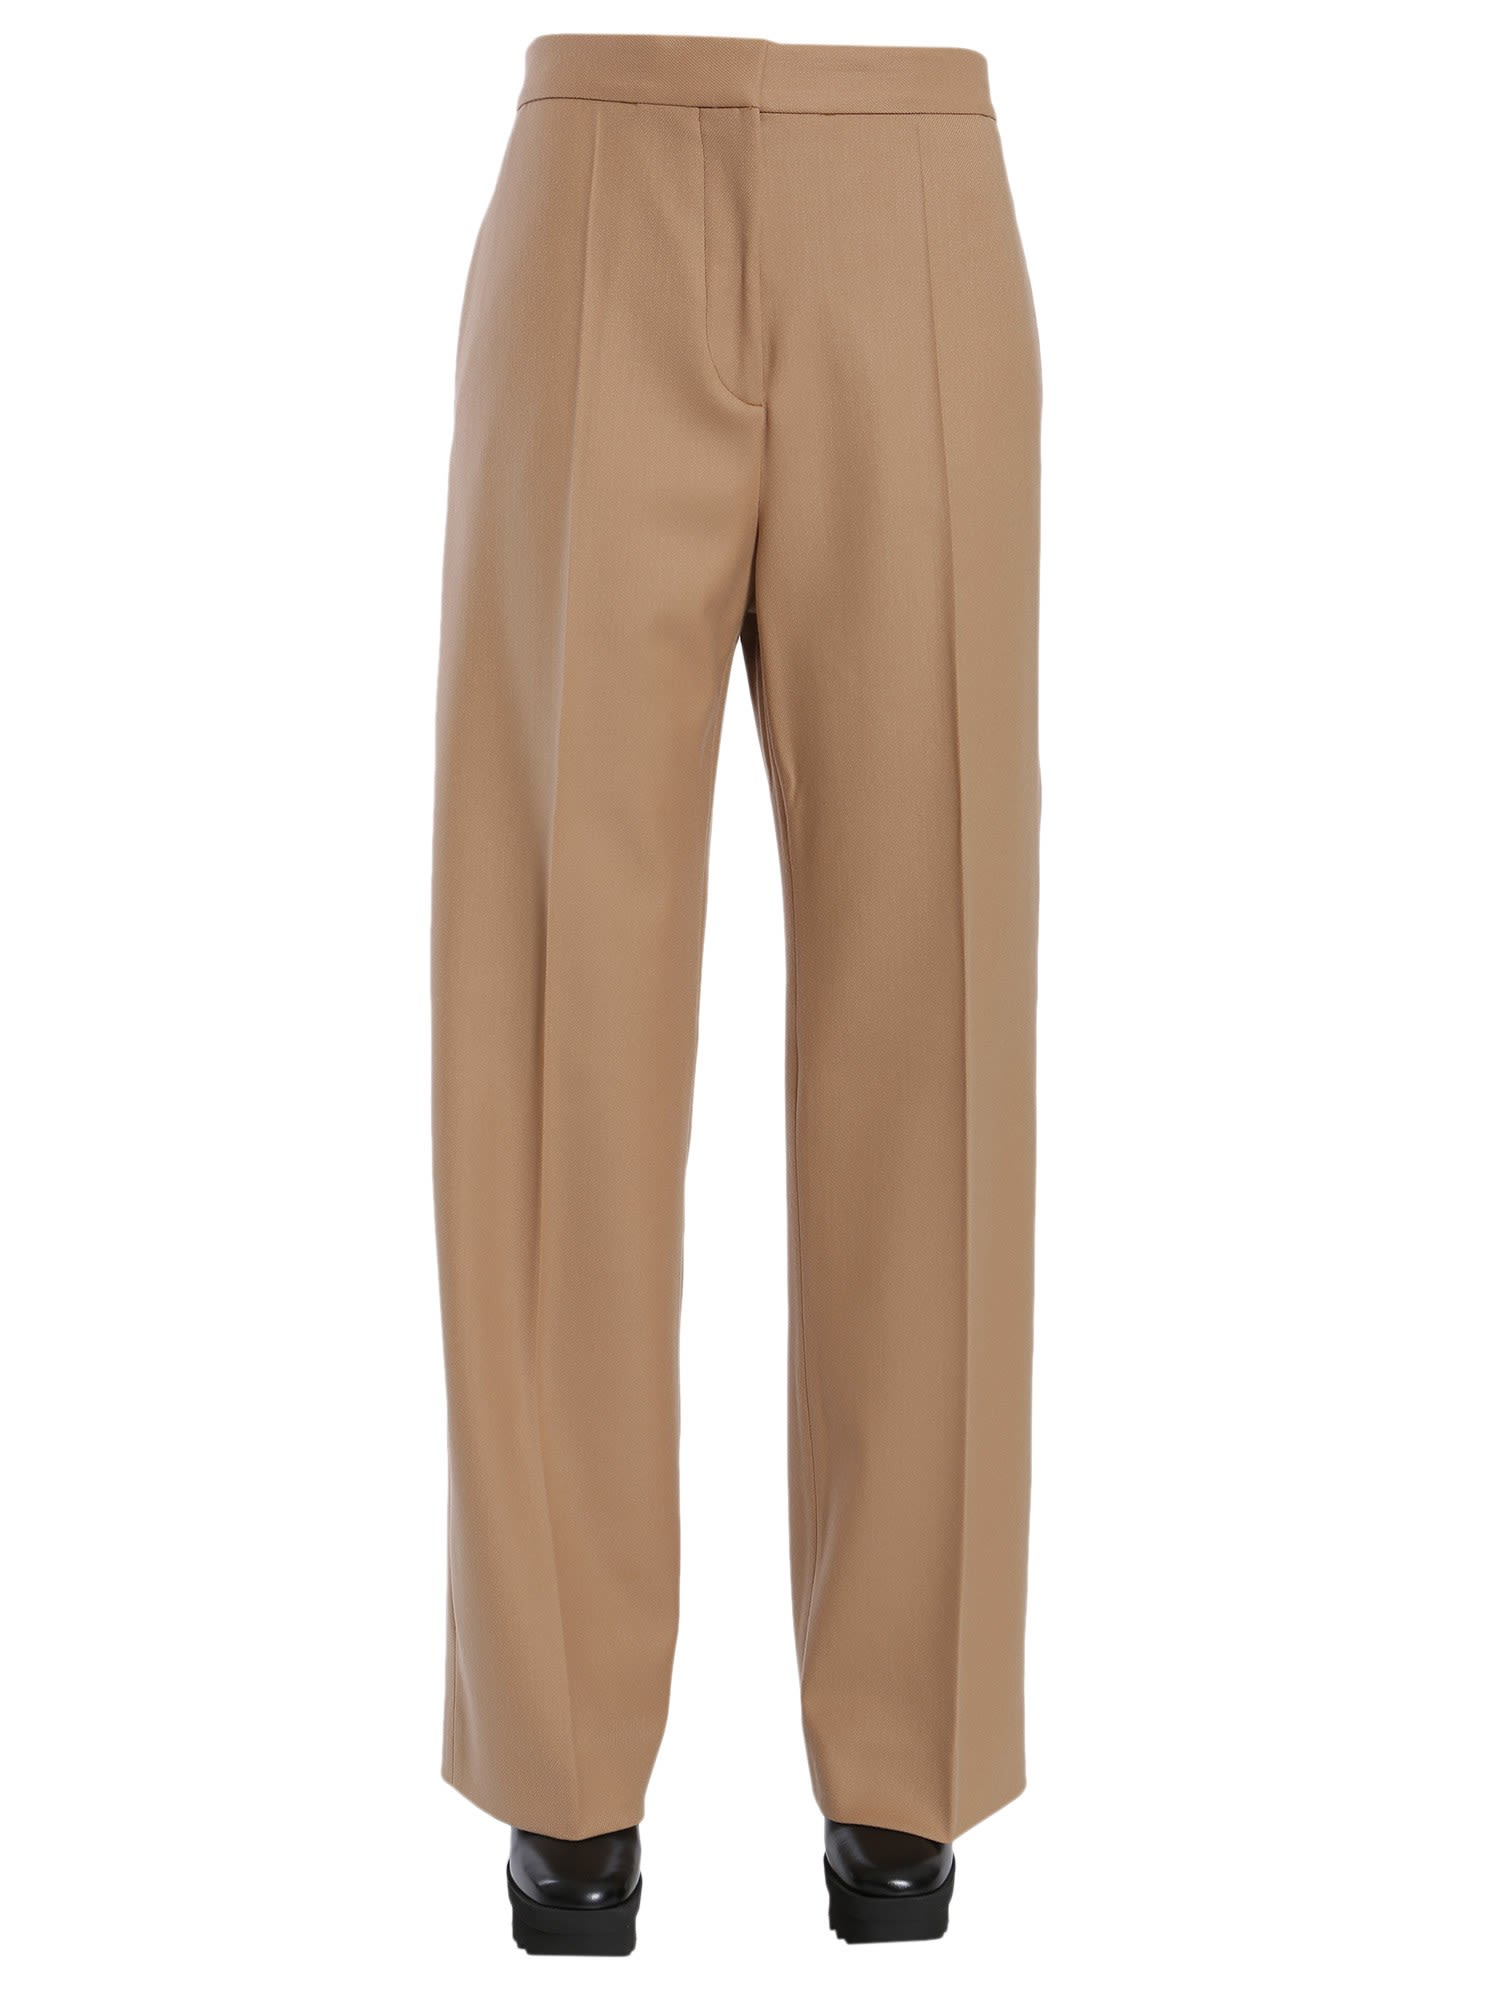 Elsmere Trousers